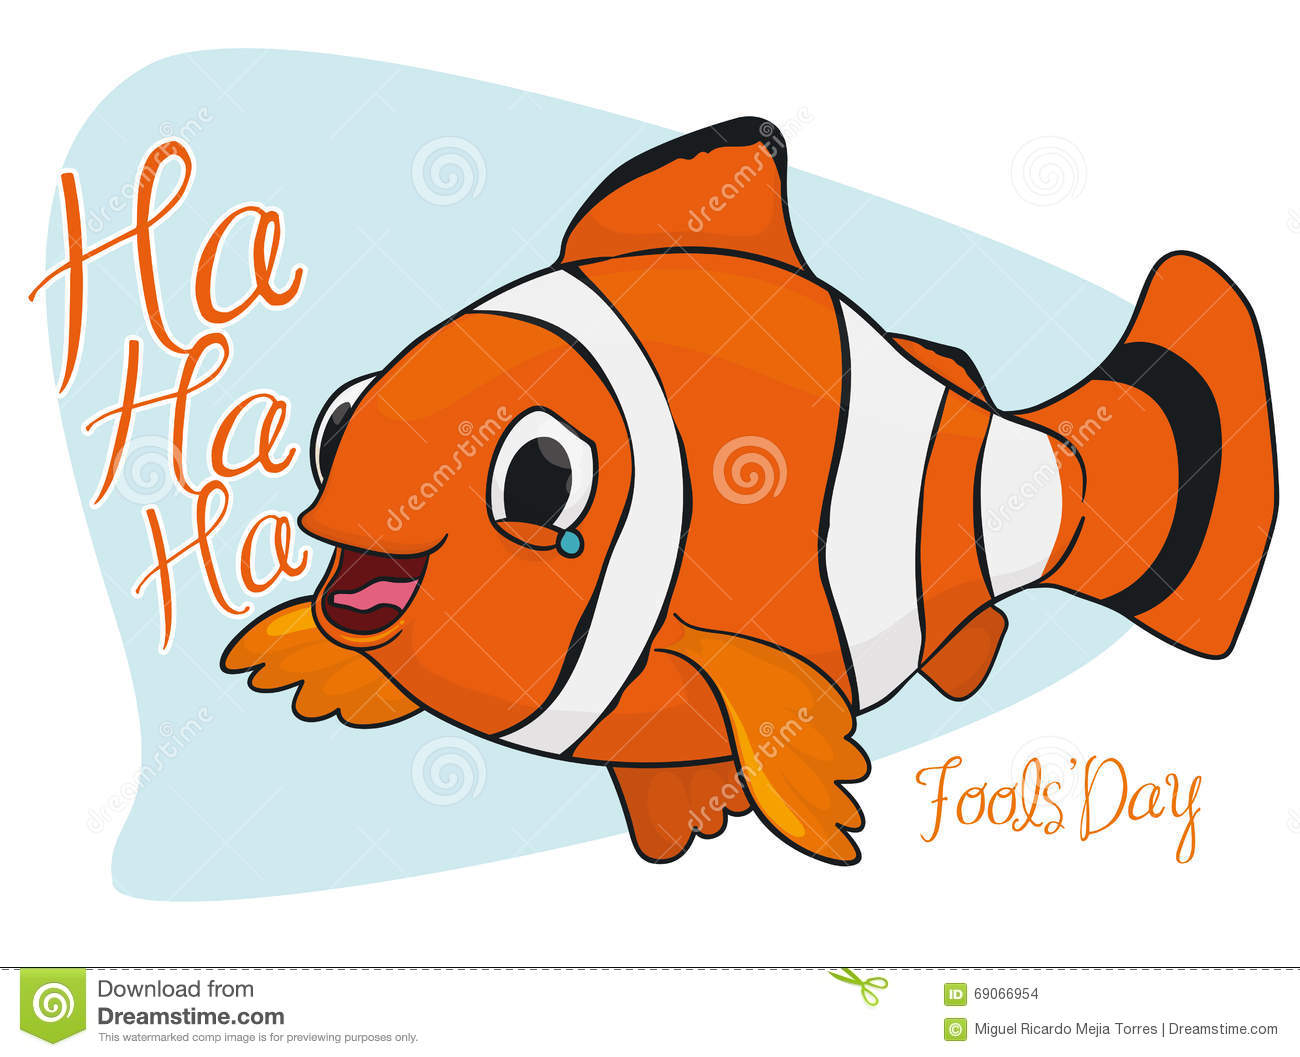 Happy Laughing Clown Fish for Fools  Day, Vector Illustration